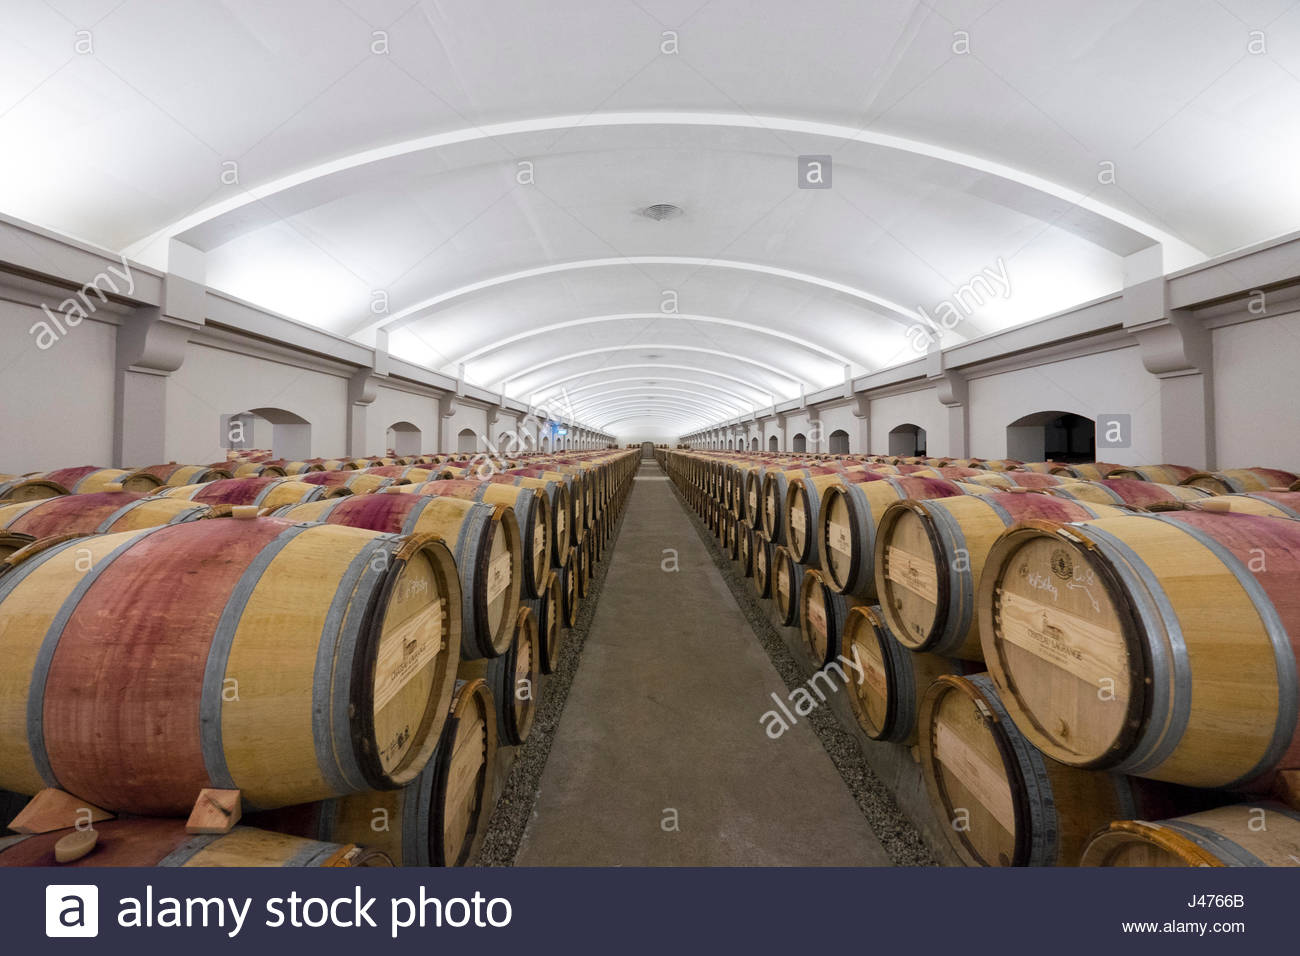 Storage oak wine barrels Amazon Wine Aged In Oak Barrels In Temperature Controlled Storage Room At Château Lagrange Winery Saintjulien Lesparremédoc Gironde Aquitaine France Wine Enthusiast Wine Aged In Oak Barrels In Temperature Controlled Storage Room At